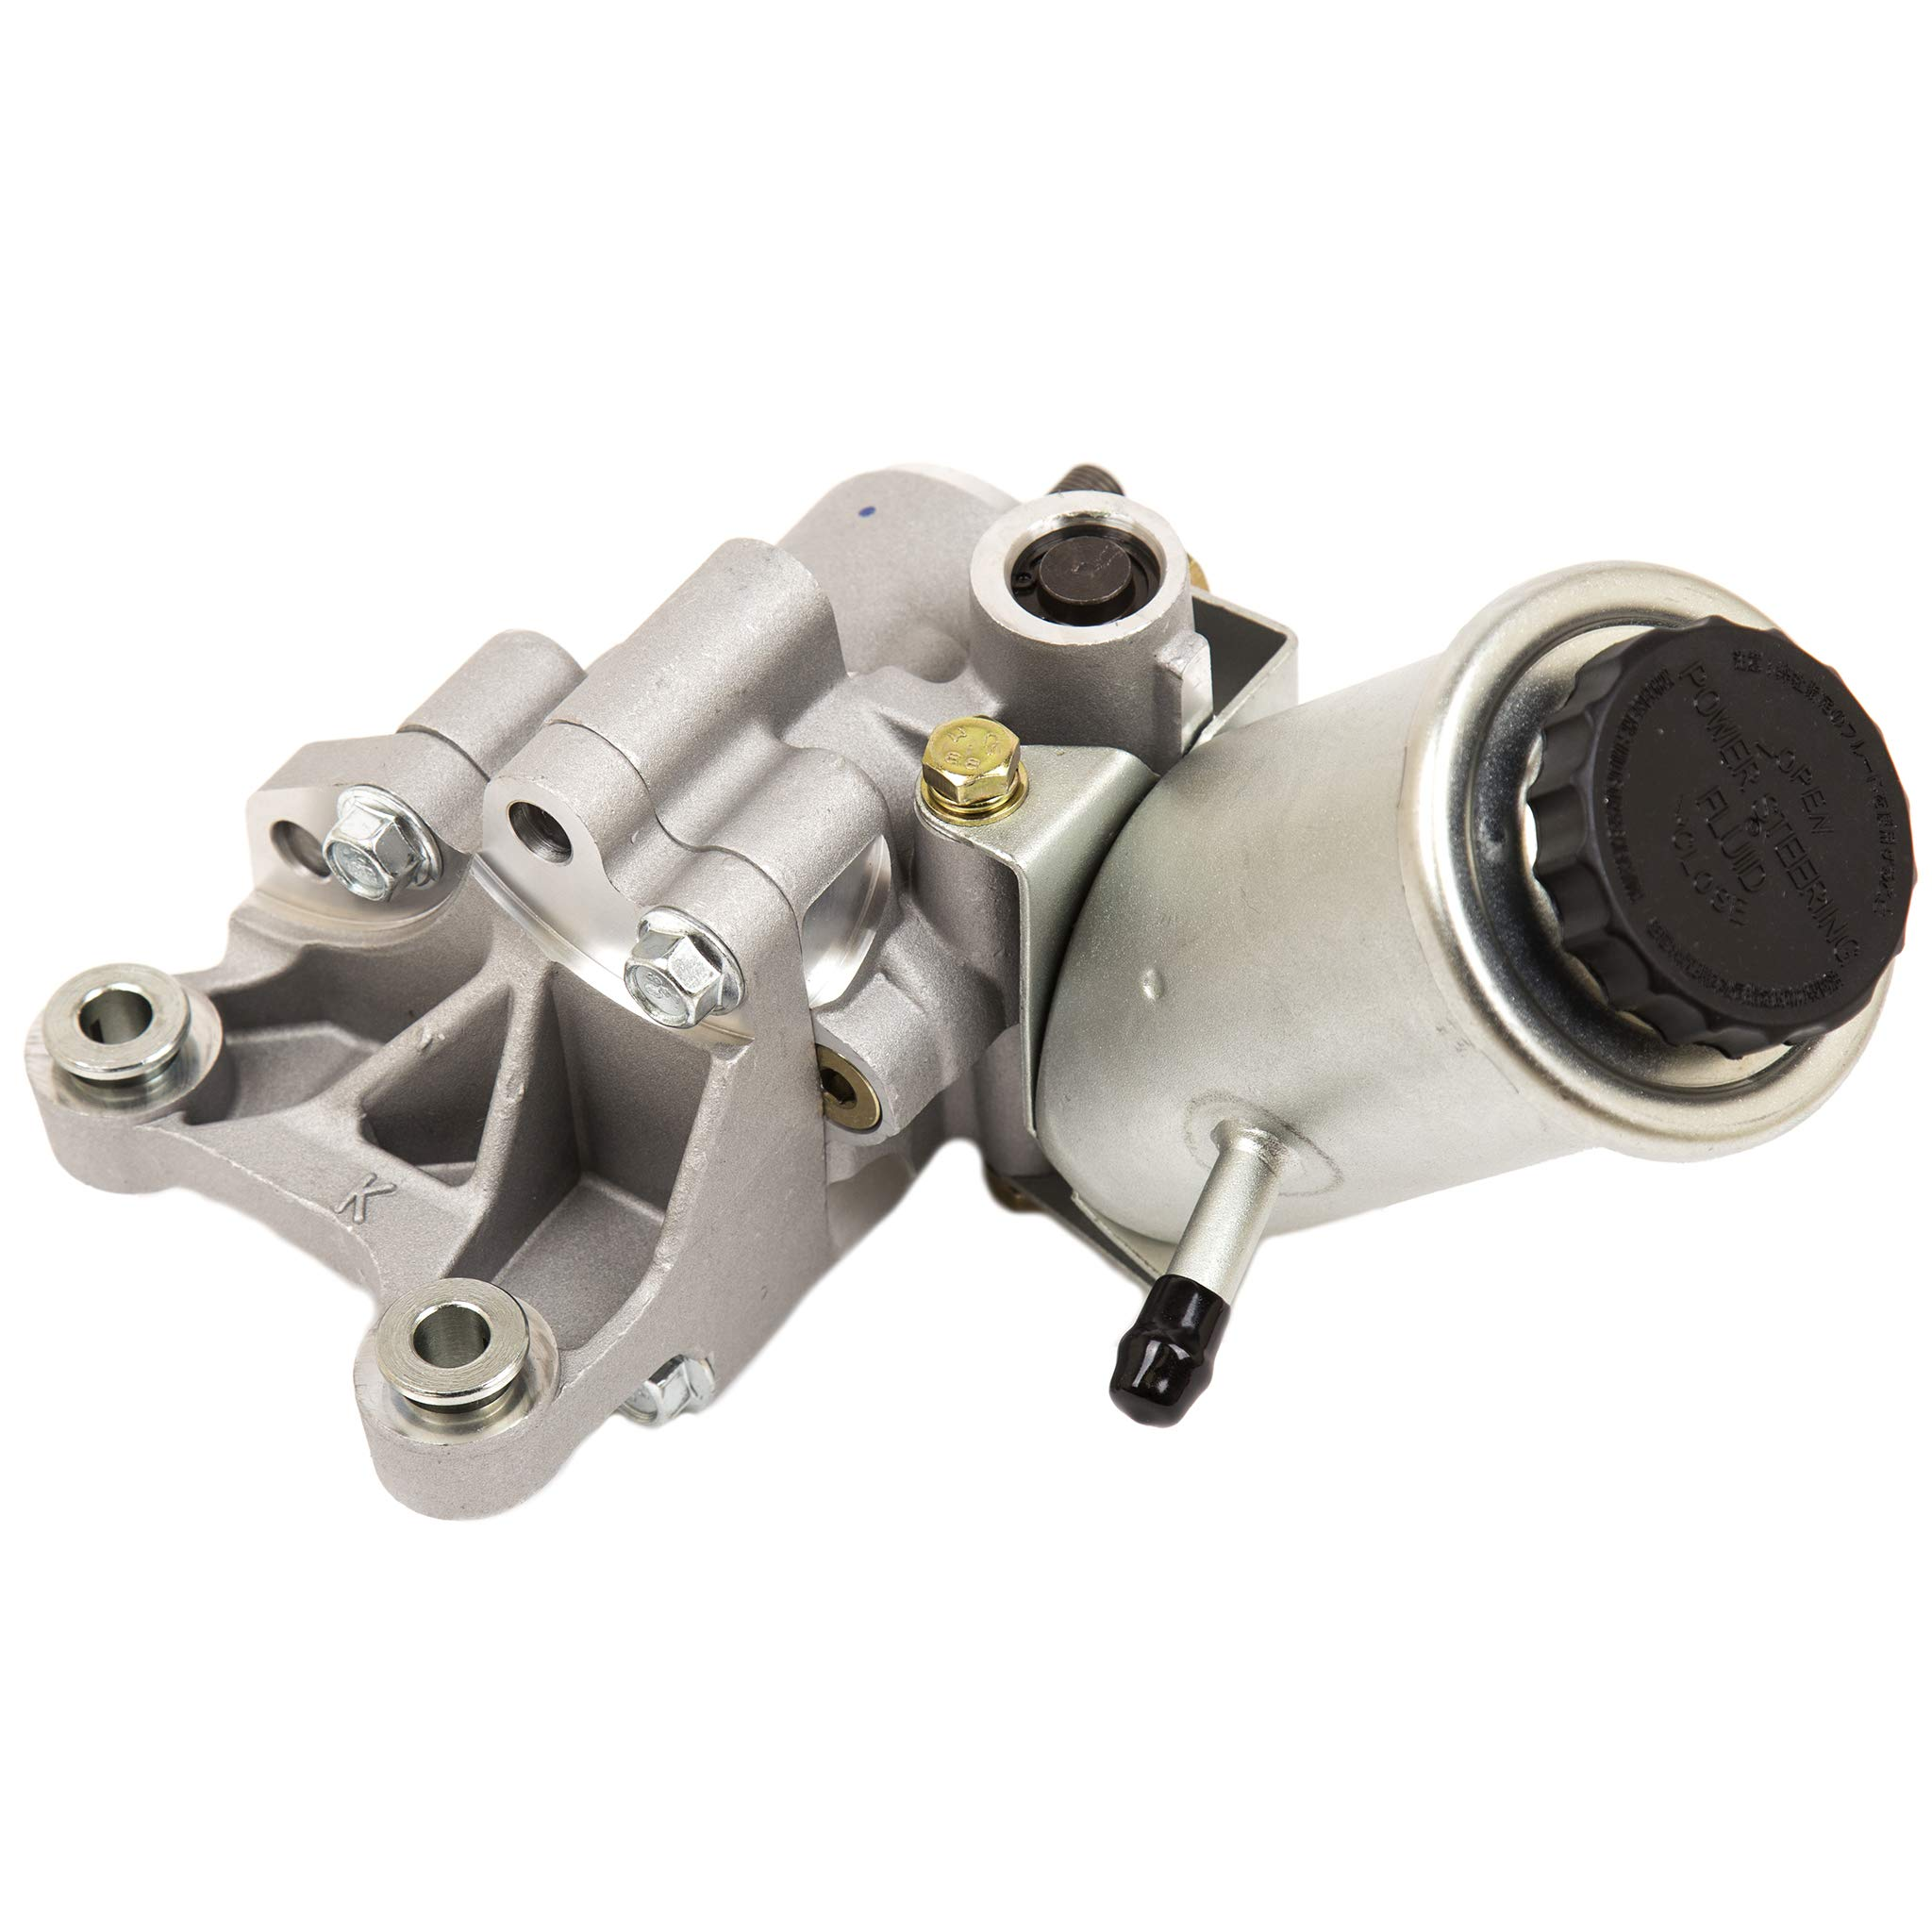 Evergreen SP-1348 Power Steering Pump fit 03-05 Honda CR-V Element 2.4 K24A1 K24A4 56110-PZD-A01